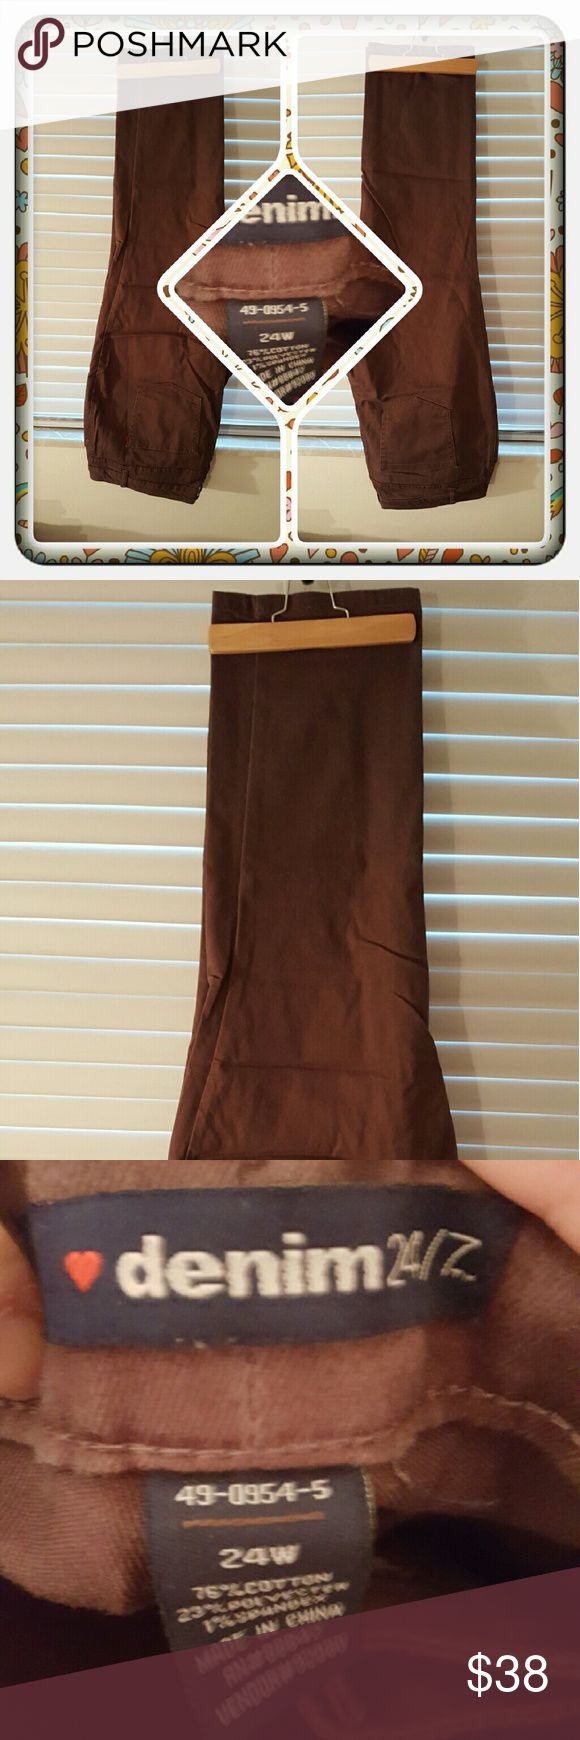 ❤ Woman's Brown Jeans Size 24W ❤ Woman's Brown Straight Leg Jeans From Woman Within Size 24W. These Have Been Worn & Washed No Damage I'm Aware Of Very Comfy & Stylish 🚫 PAYPAL 🚫 TRADES 🚫 OFFERS PRICED LOW TO SELL ❤ Woman Within Jeans Straight Leg